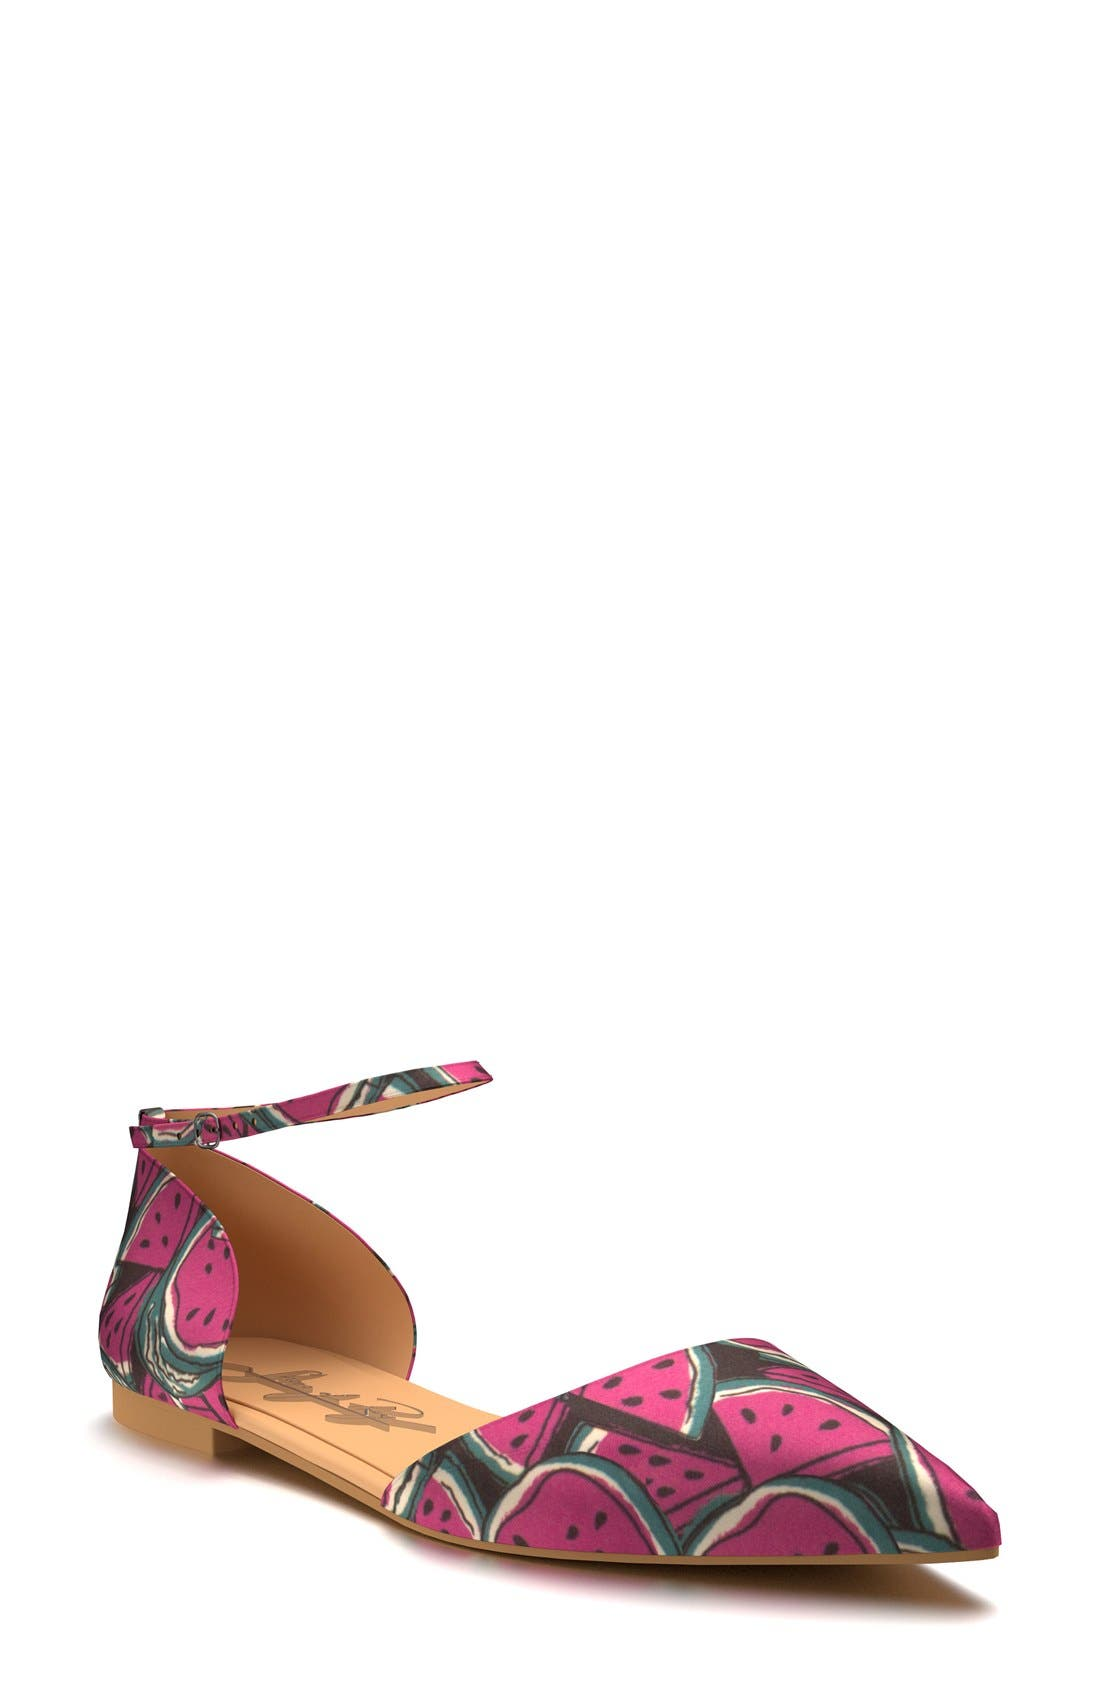 Alternate Image 1 Selected - Shoes of Prey d'Orsay Flat (Women)